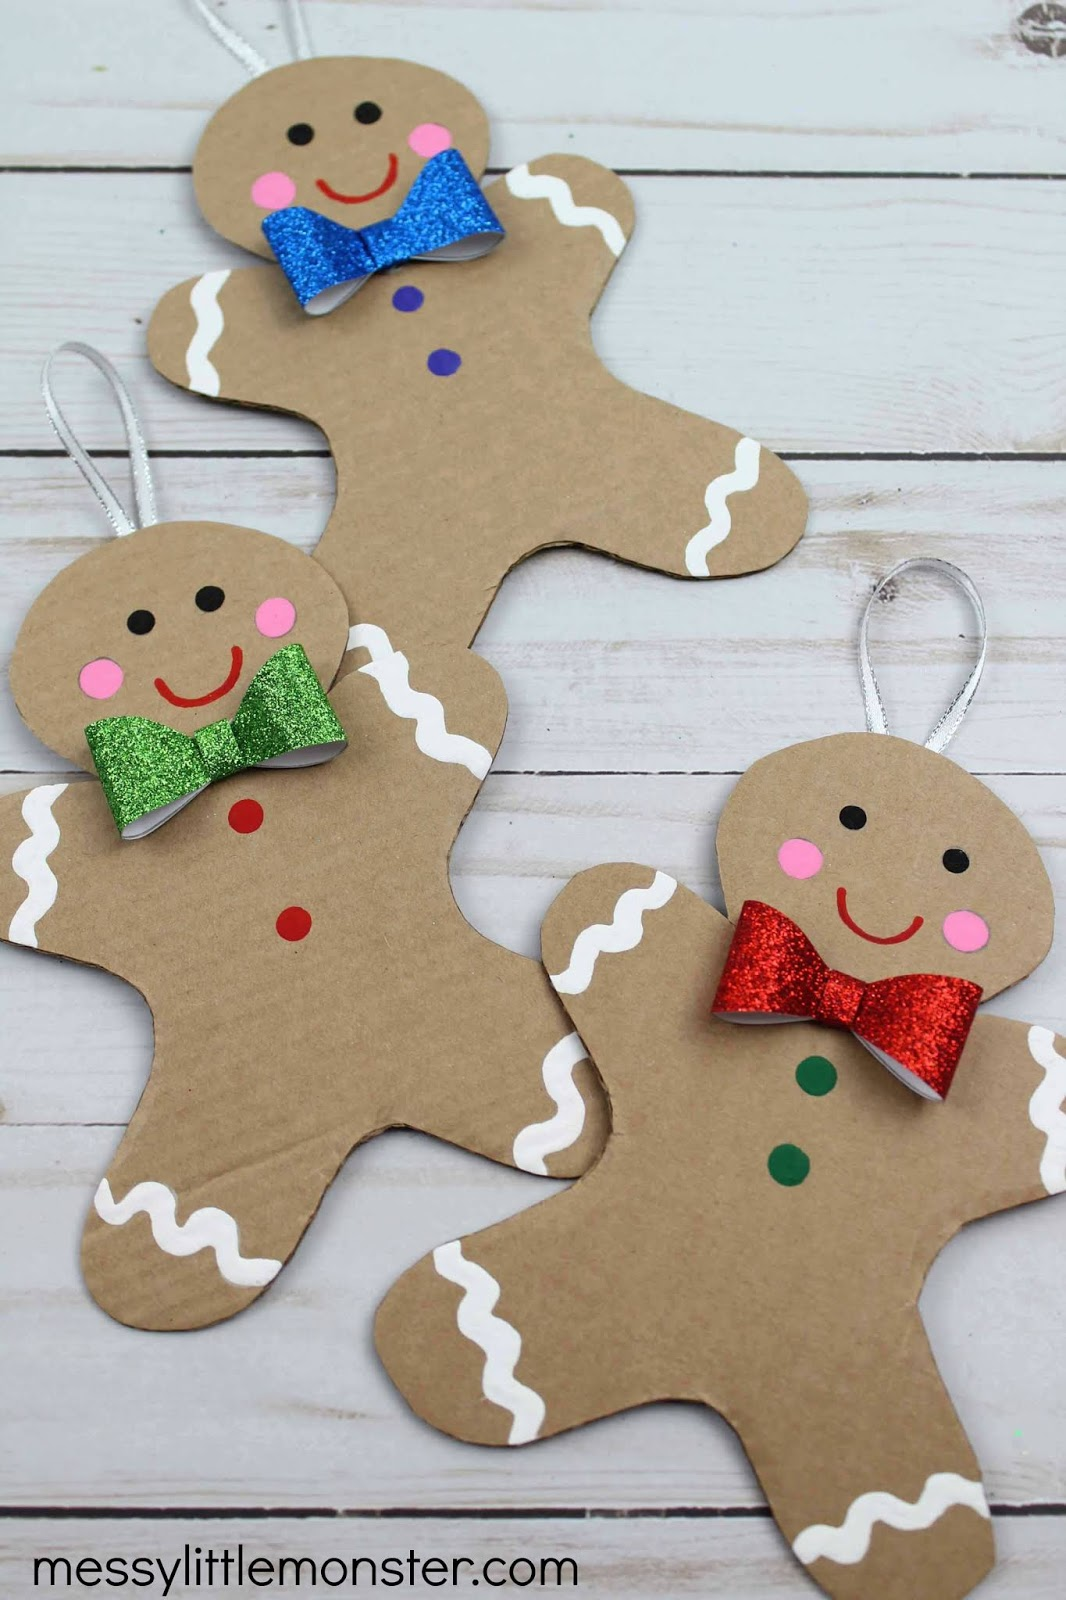 Cardboard Gingerbread Man Craft Template Included